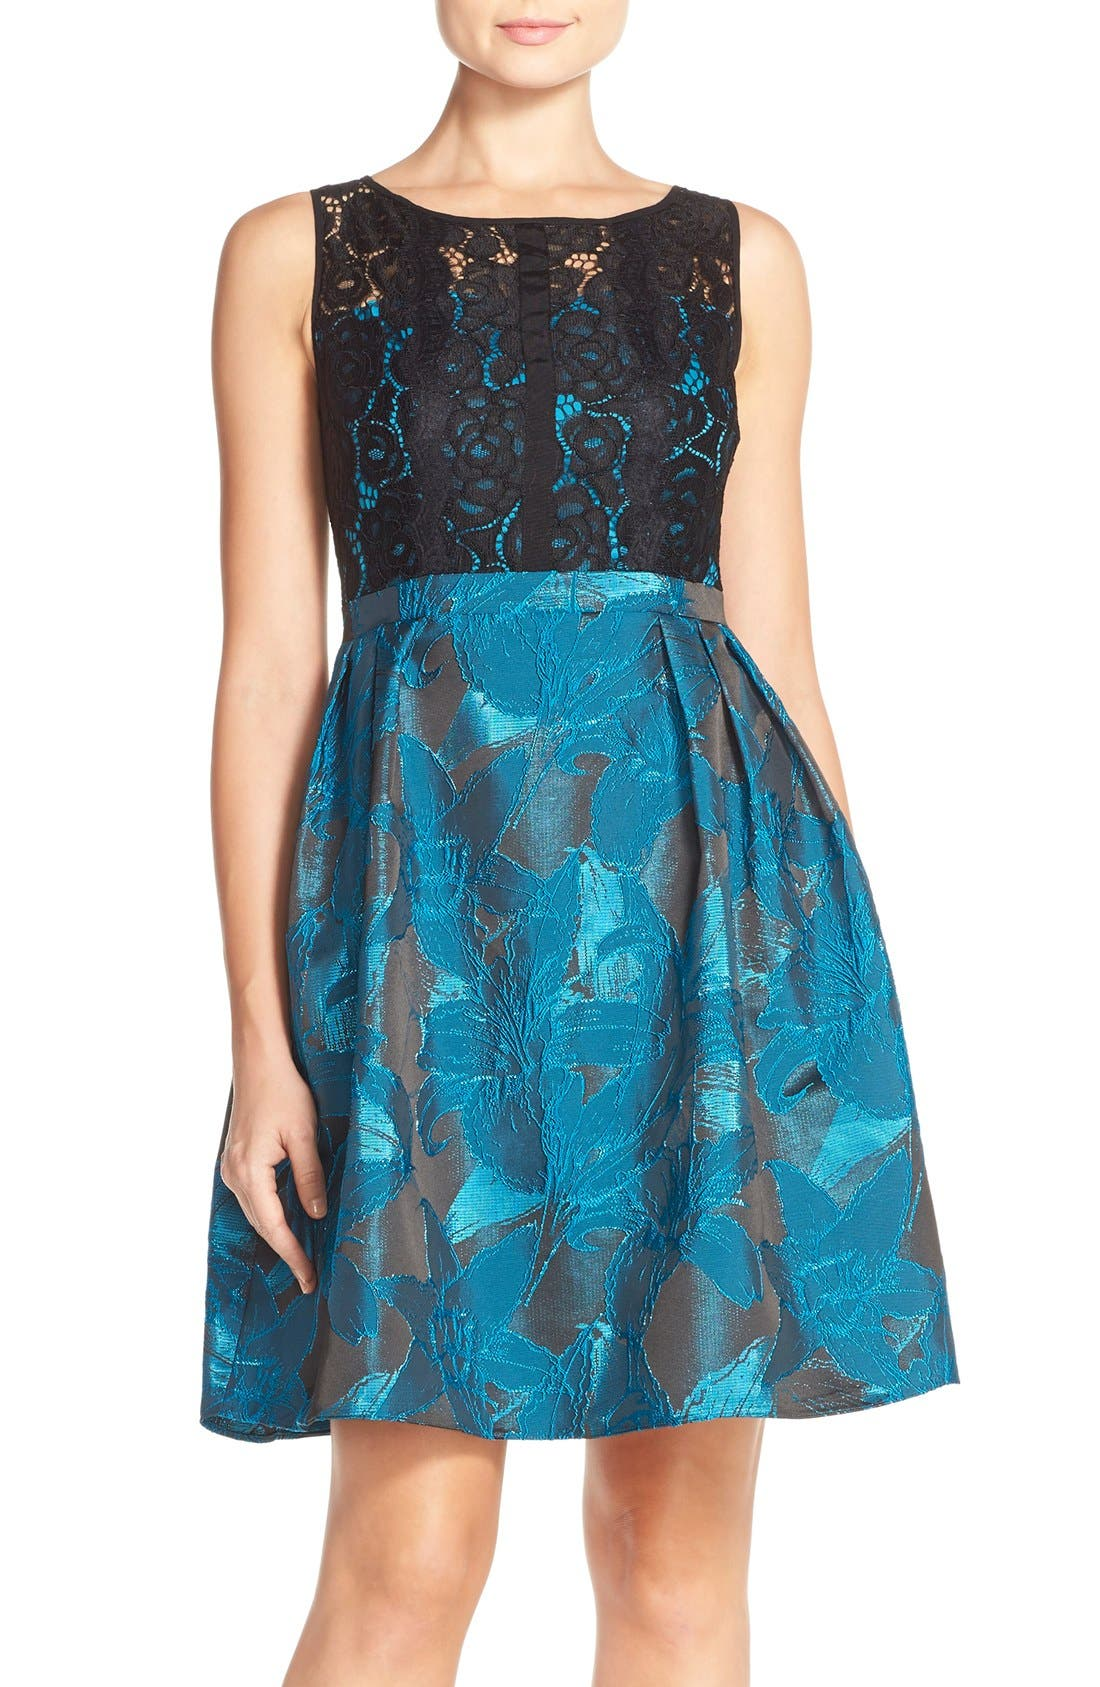 Alternate Image 1 Selected - Adrianna Papell Lace Jacquard Fit & Flare Dress (Regular & Petite)